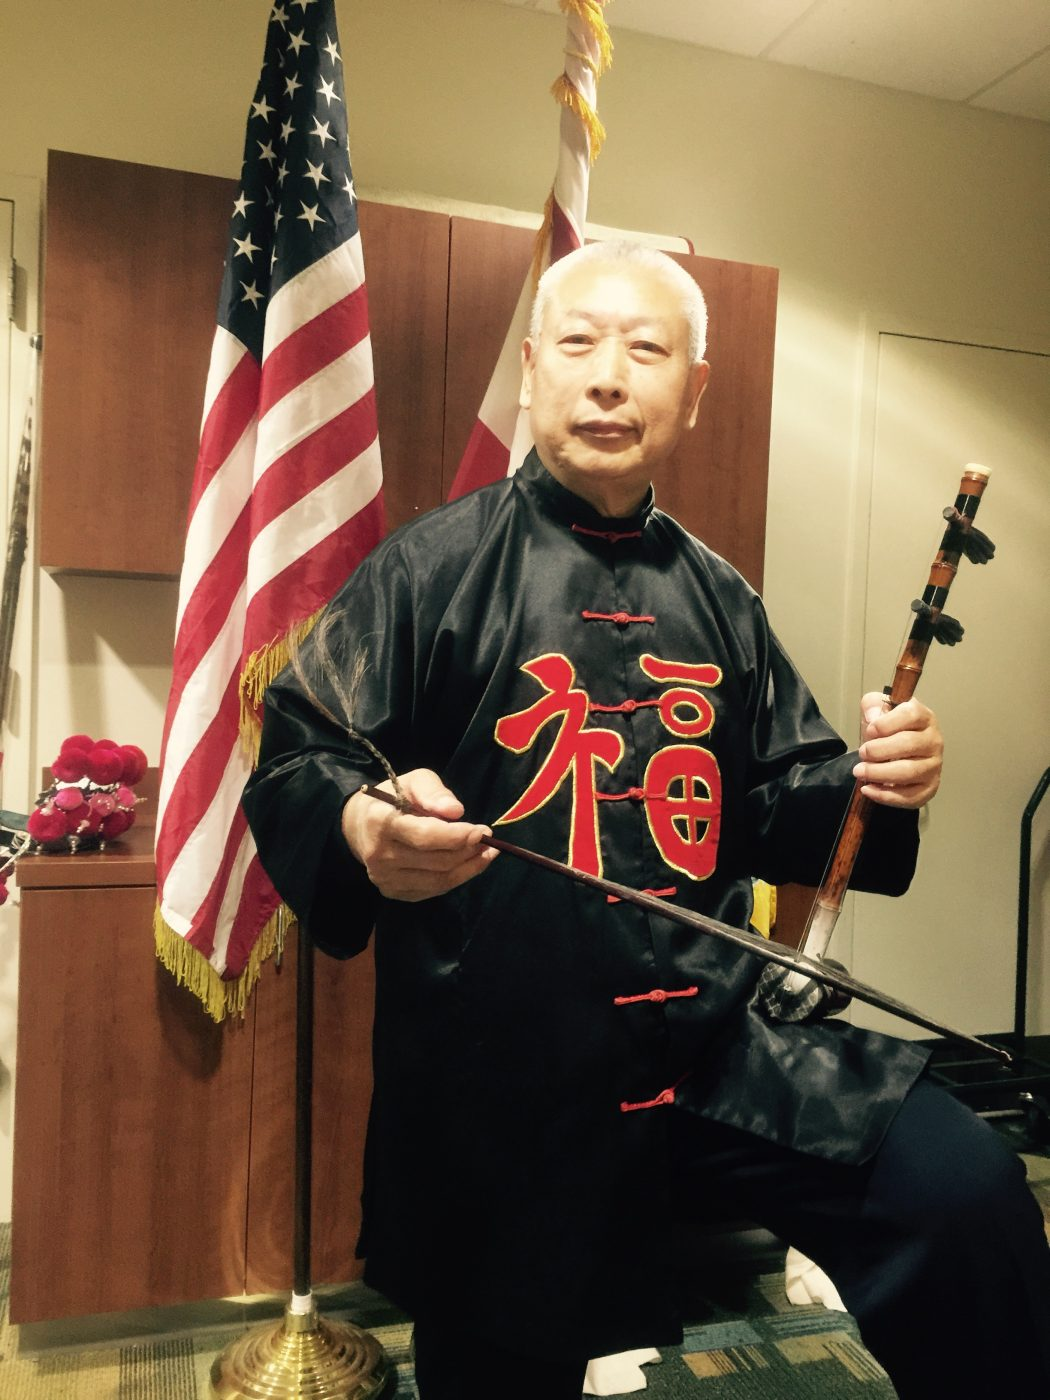 Changkui Tang playing Erhu, Chinese two-stringed fiddle